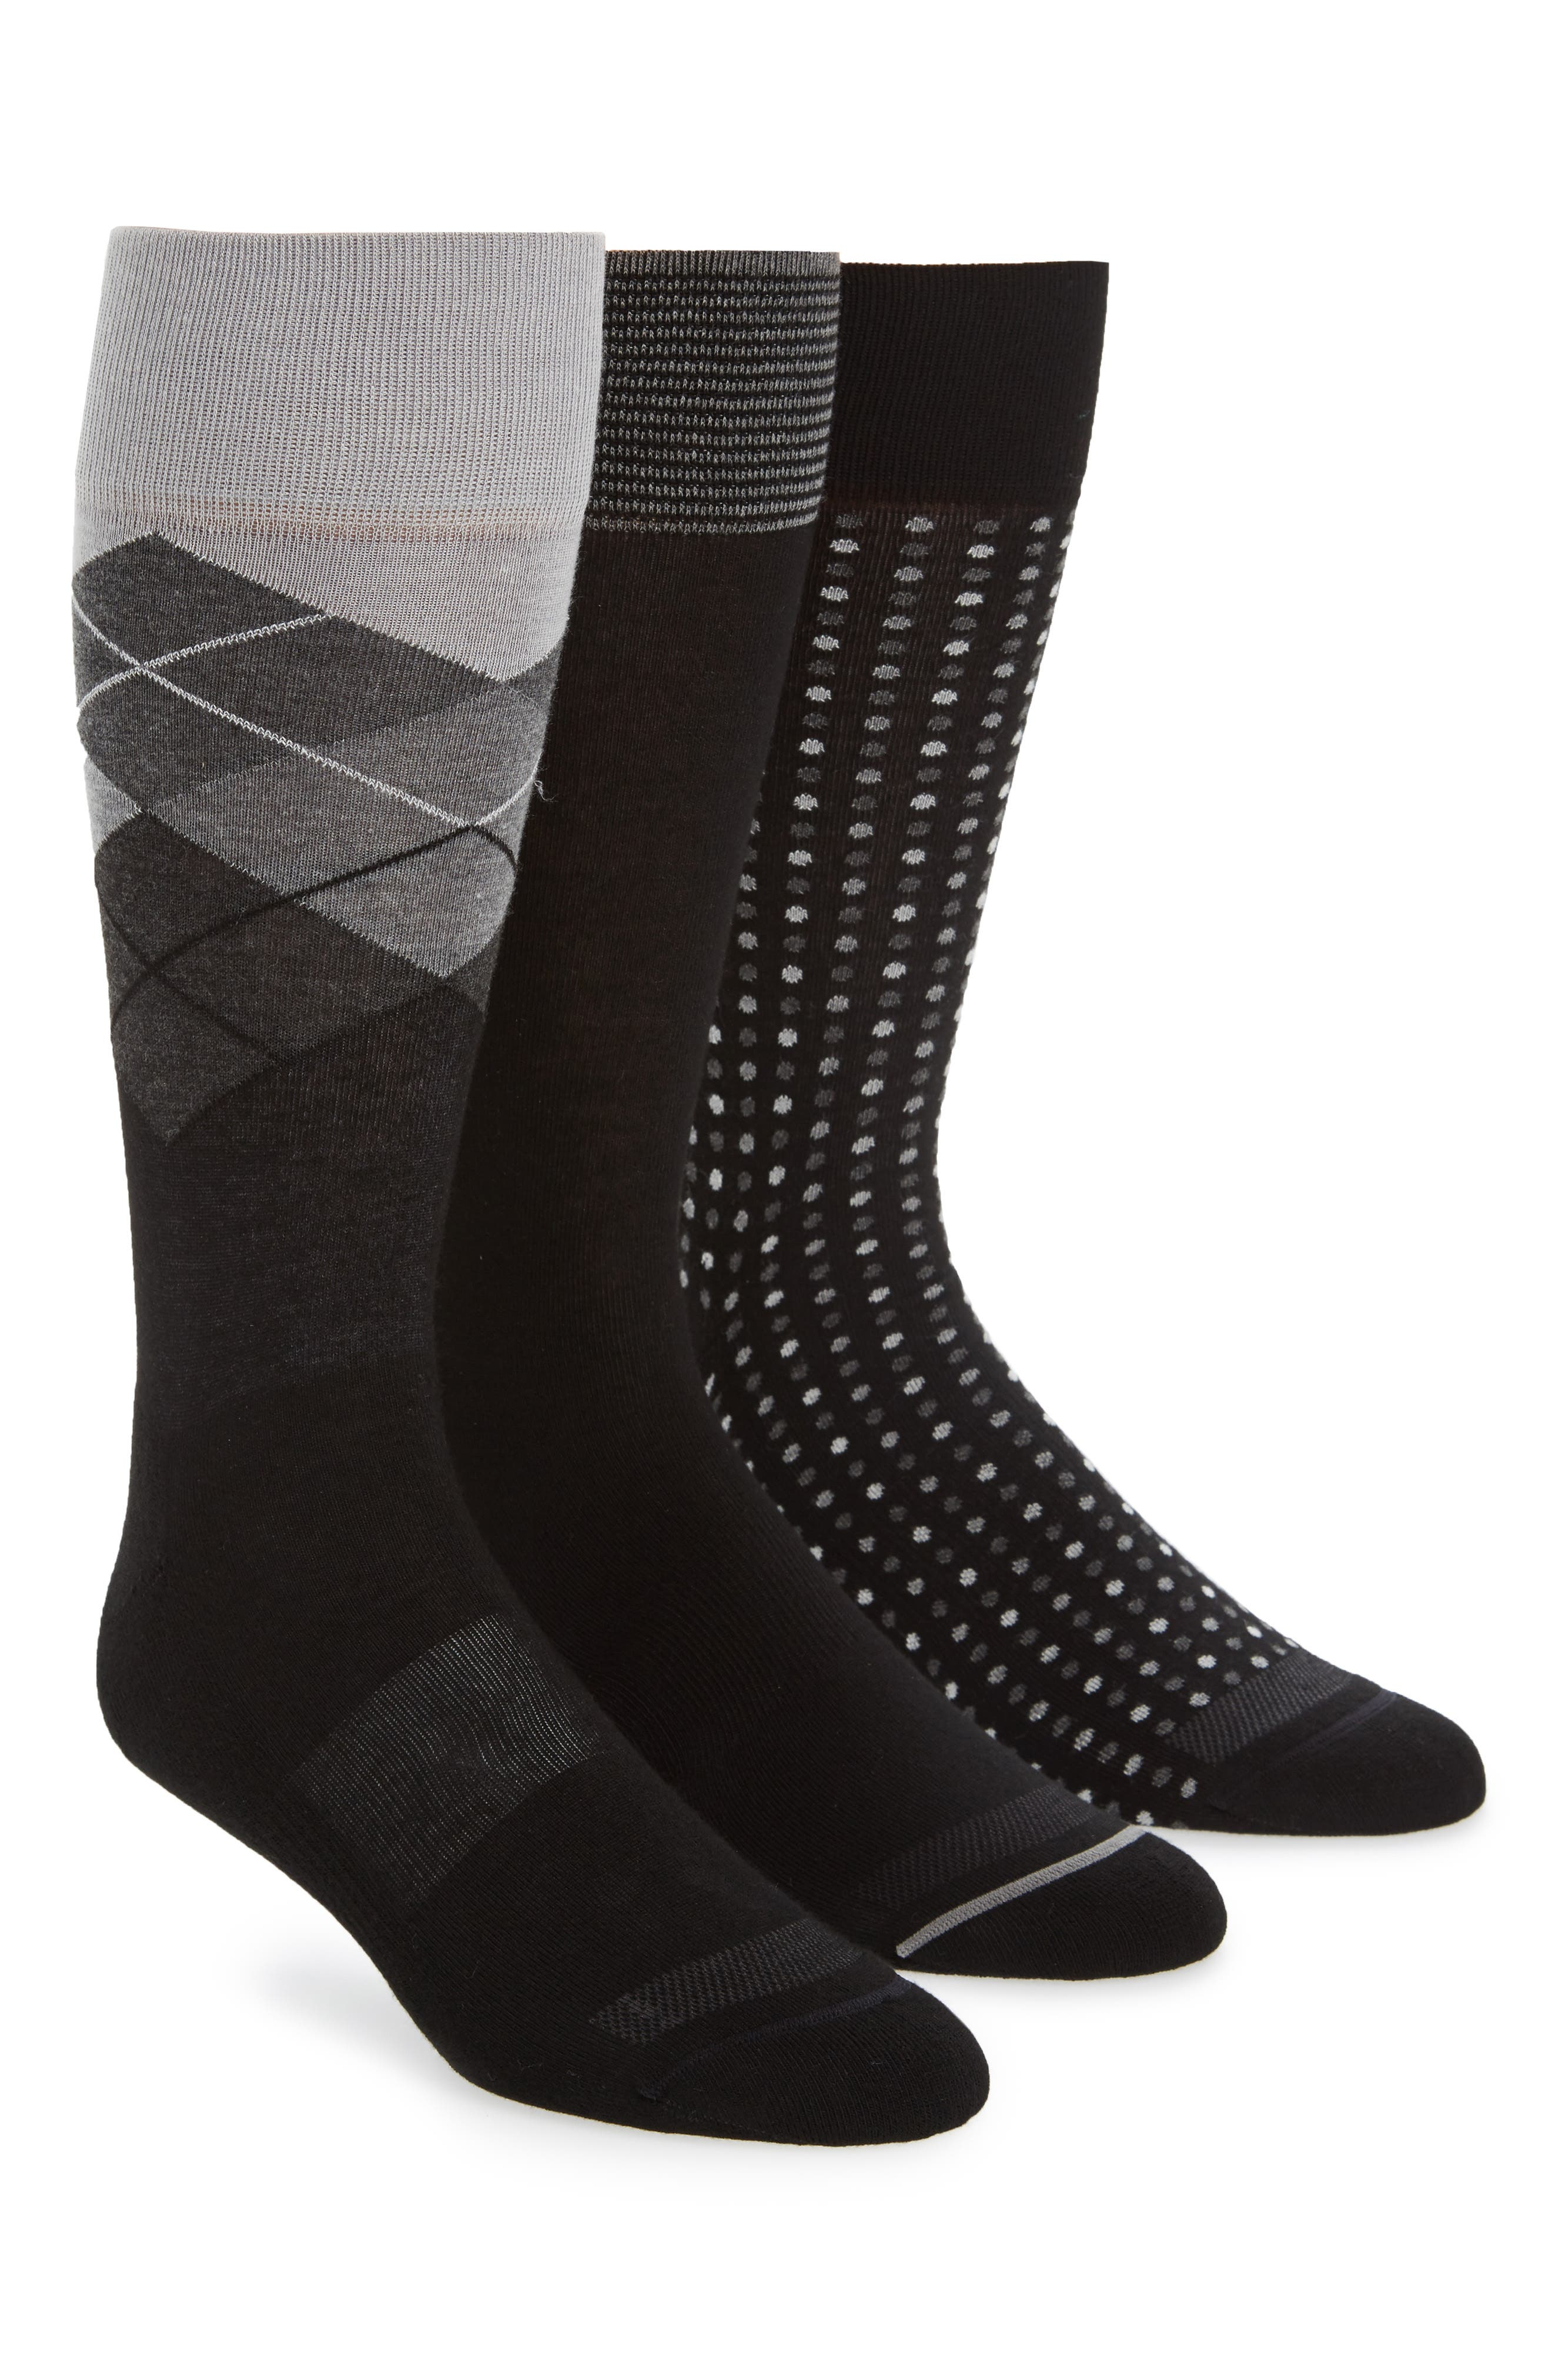 Nordstrom Men's Shop 3-Pack Assorted Dress Socks